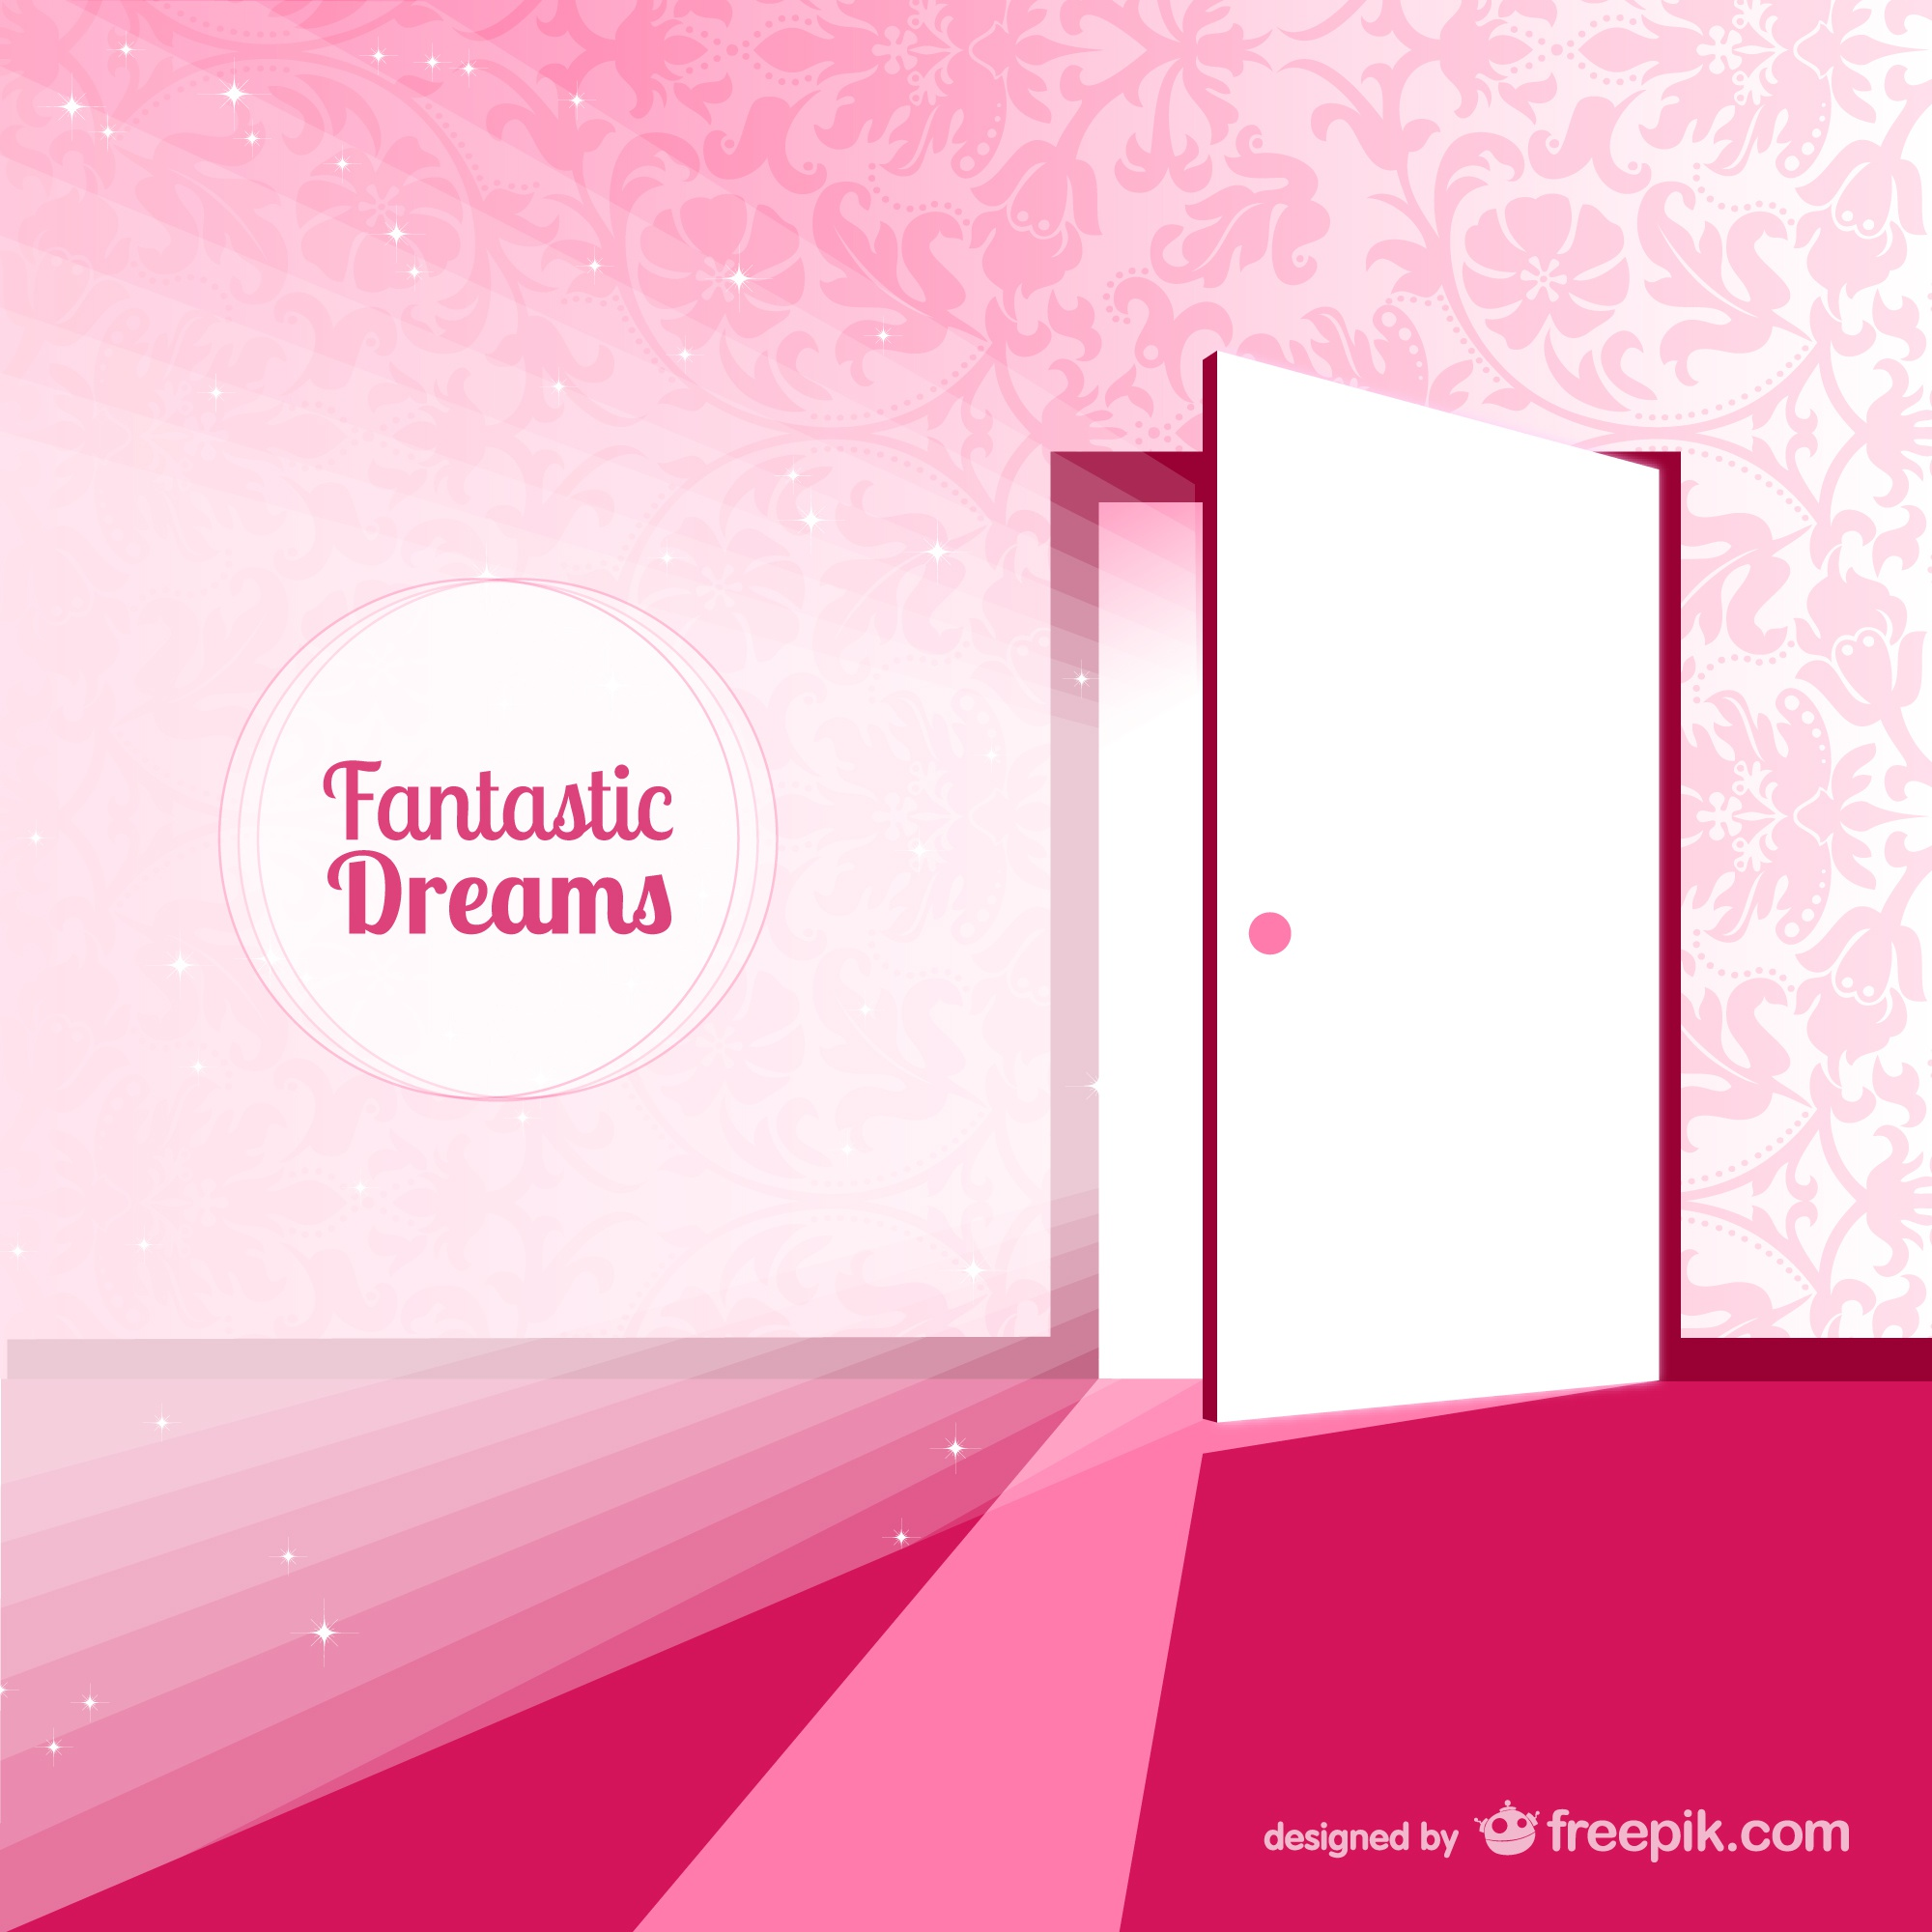 Fantasy door for dreams vector illustration